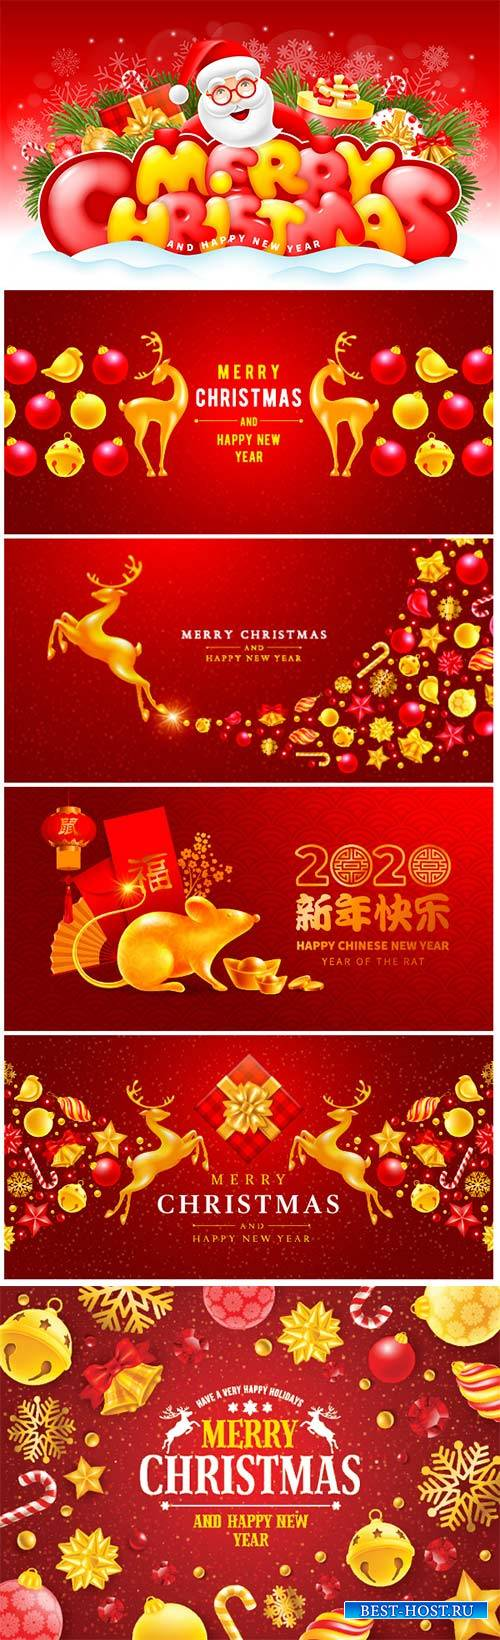 Cheerful and bright congratulation design for Christmas